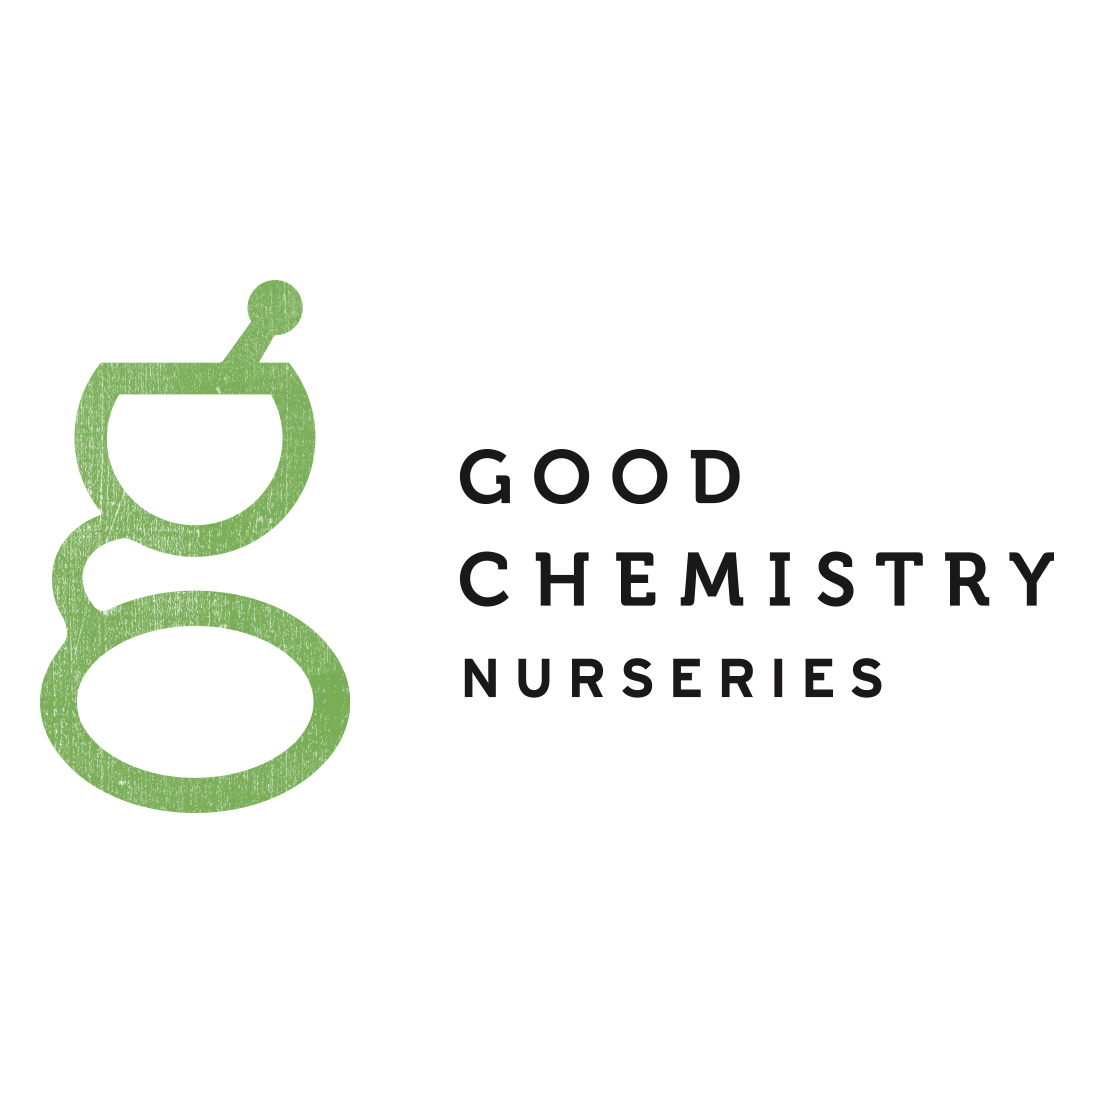 good-chemistry-nurseries-new-2-4x4